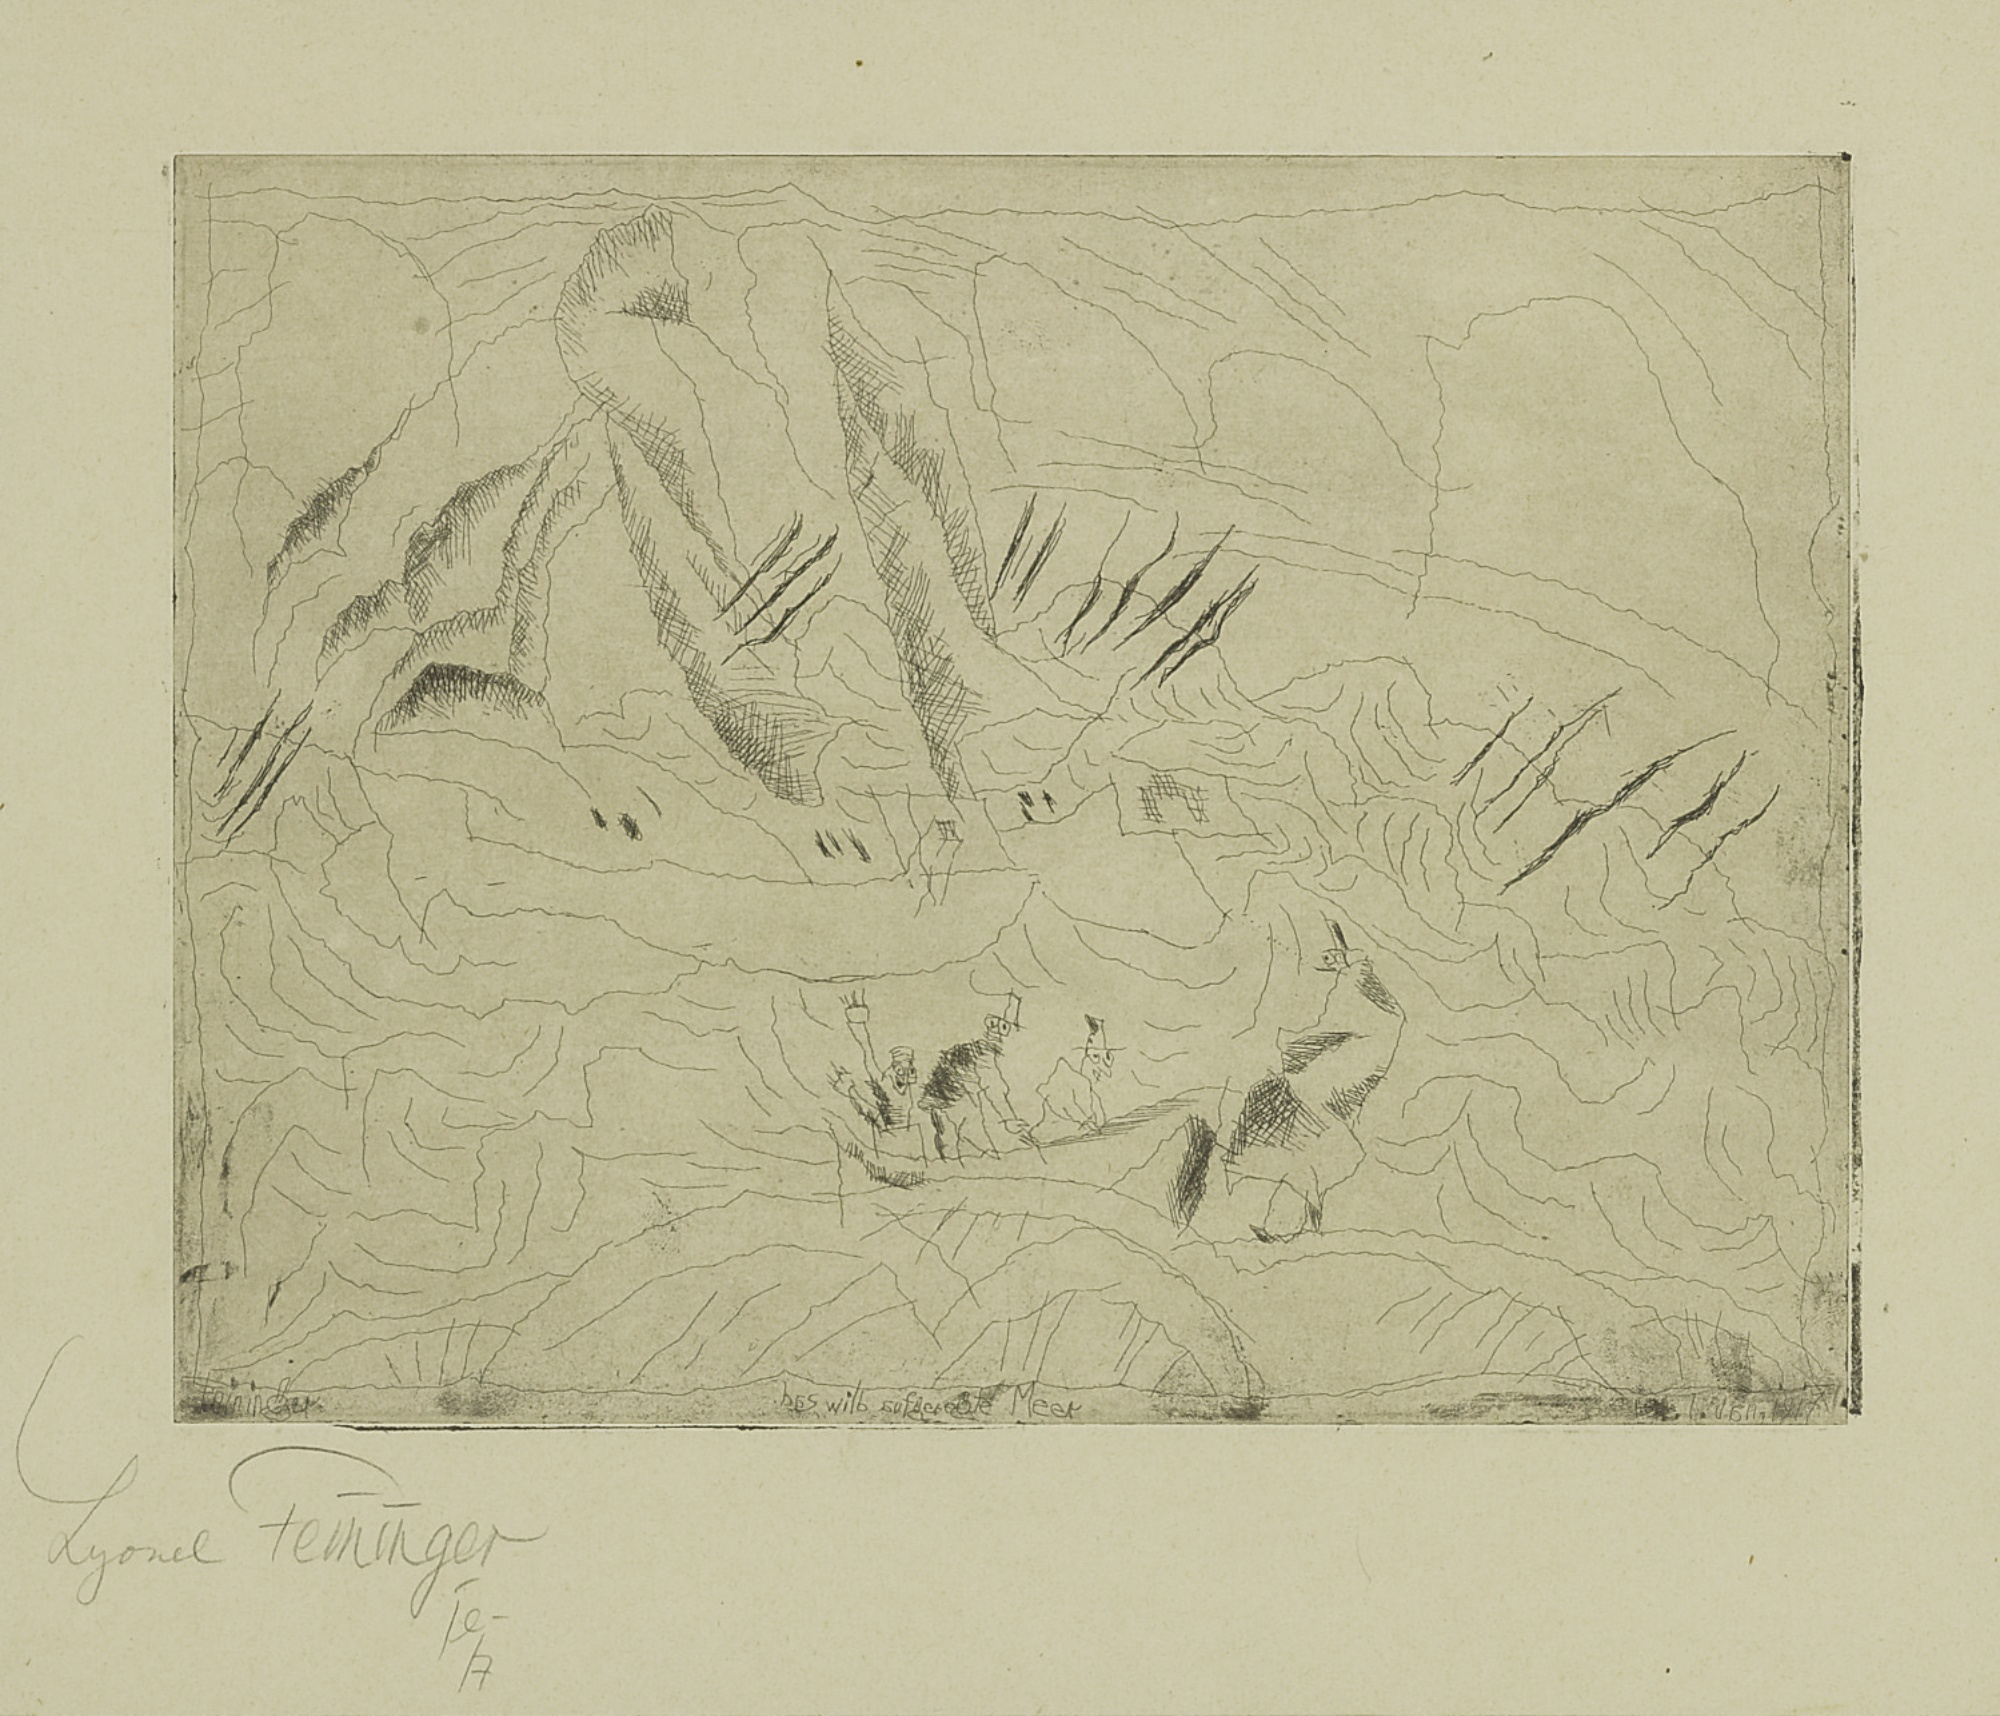 Lyonel Feininger-The Wild Agitated Sea (Das Wild Aufgeregte Mer) (P. E 62)-1917